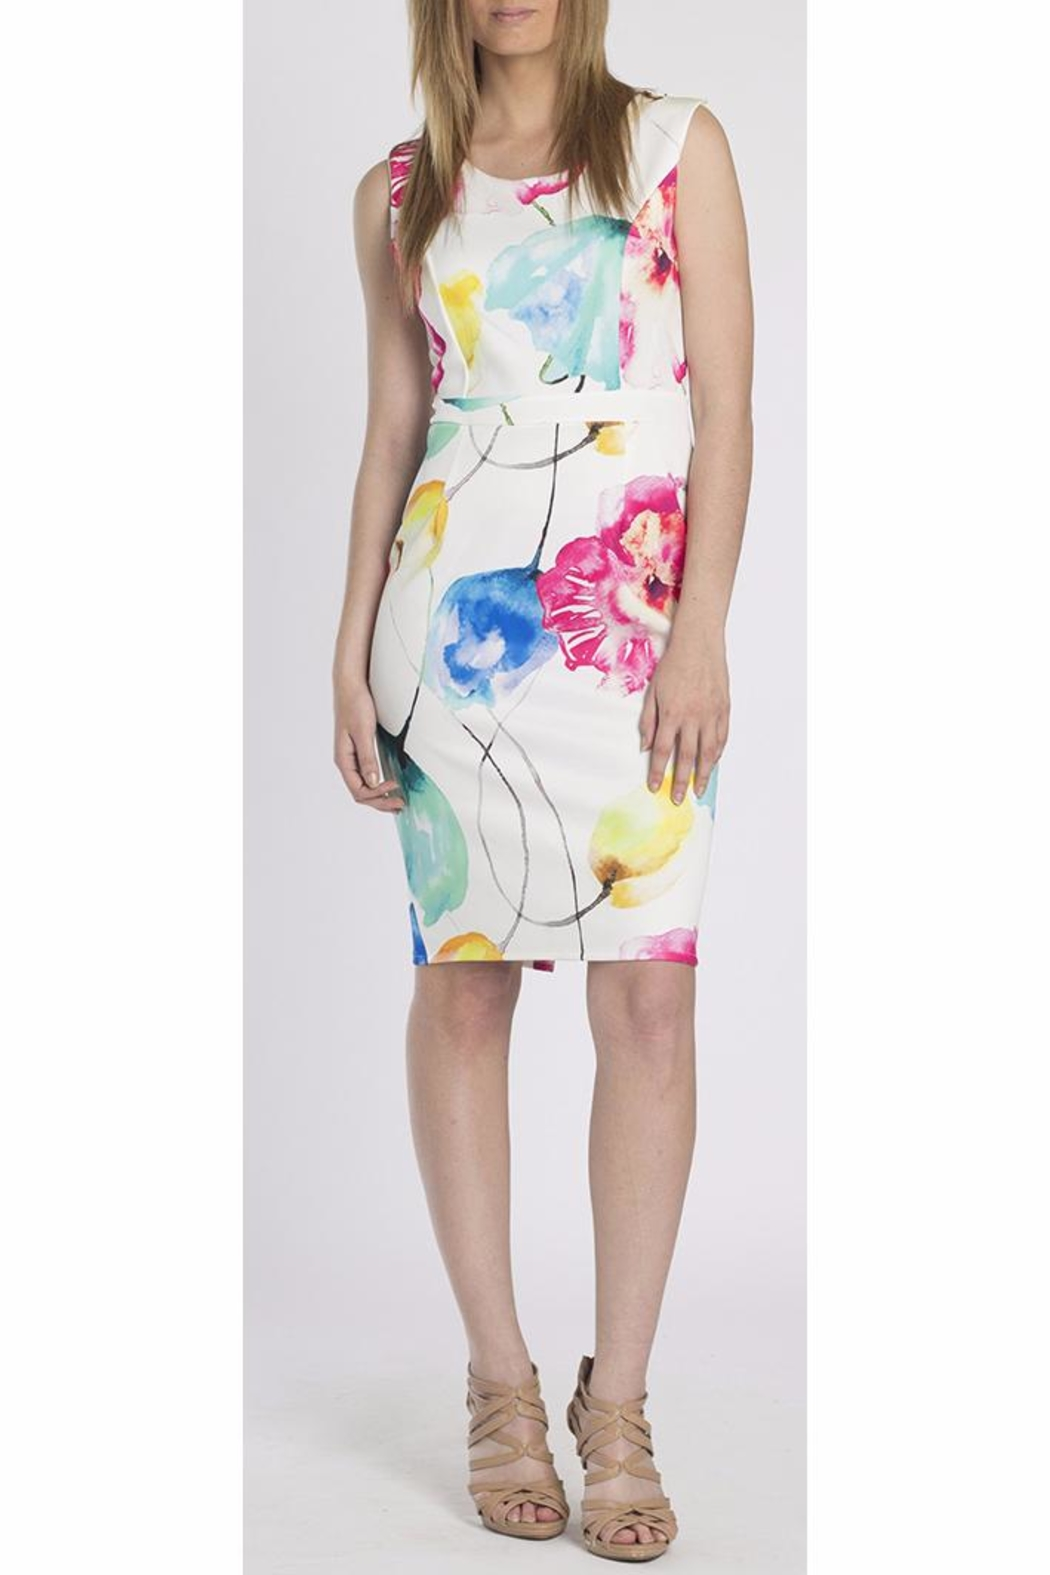 Erika Lang Gaby Floral Dress - Main Image